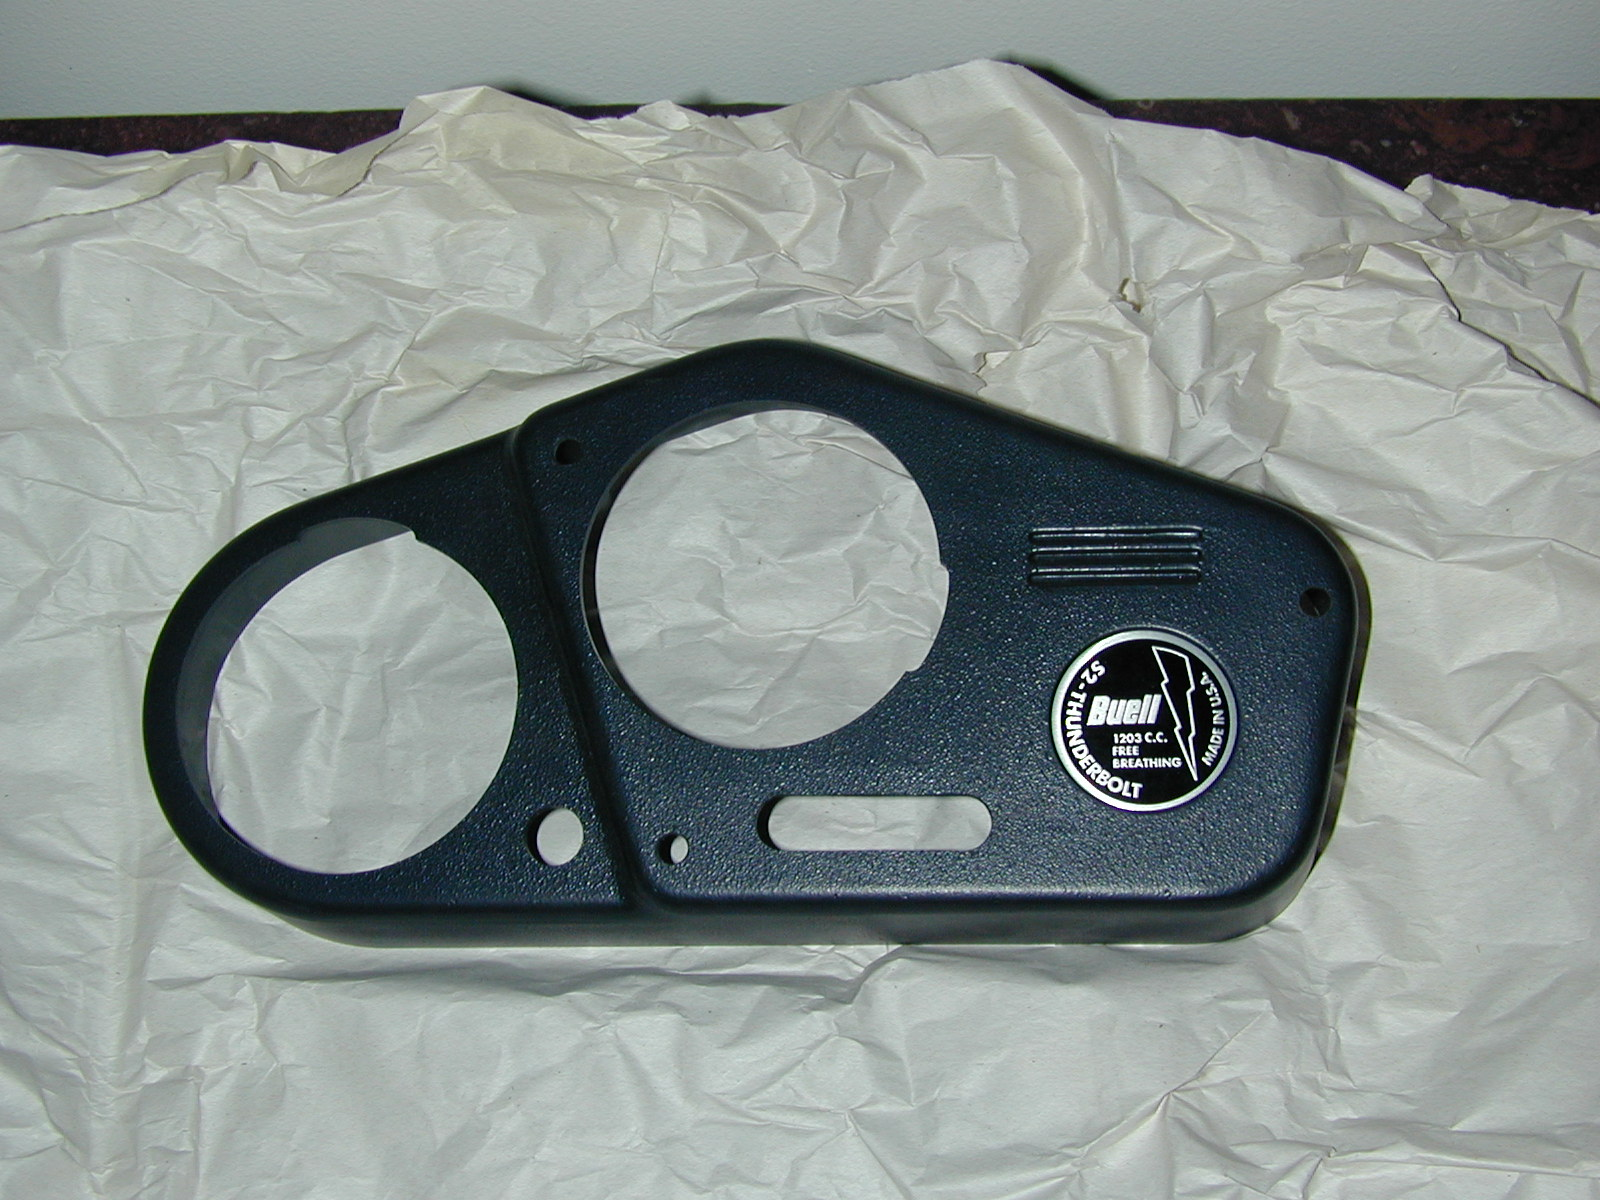 Buell S2 Dash Panel - Instrument Panel with Badge